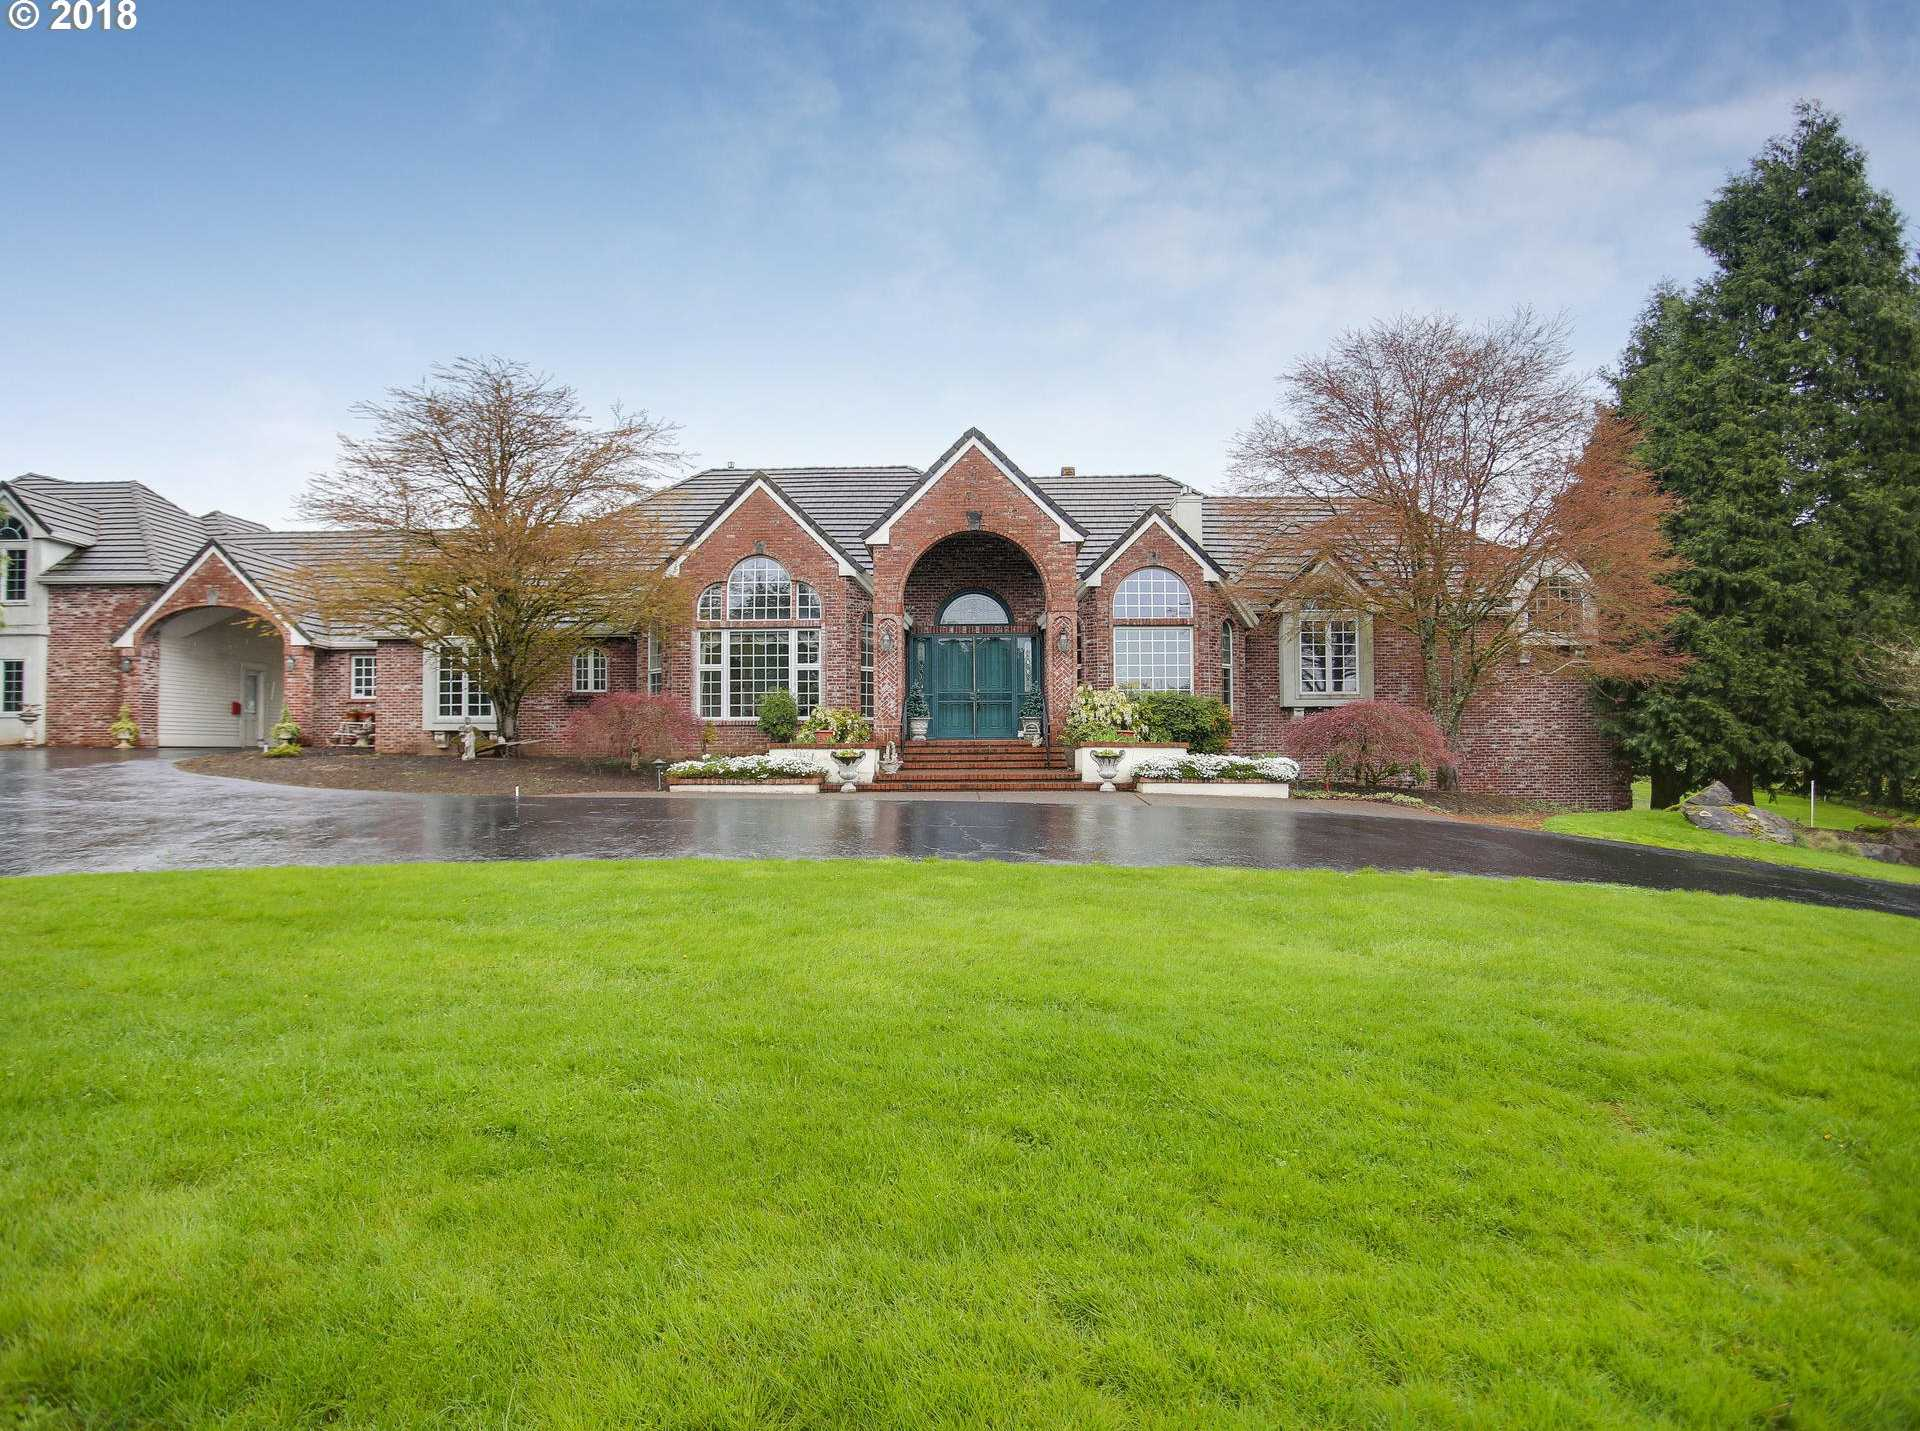 $1,749,989 - 6Br/6Ba -  for Sale in West Linn